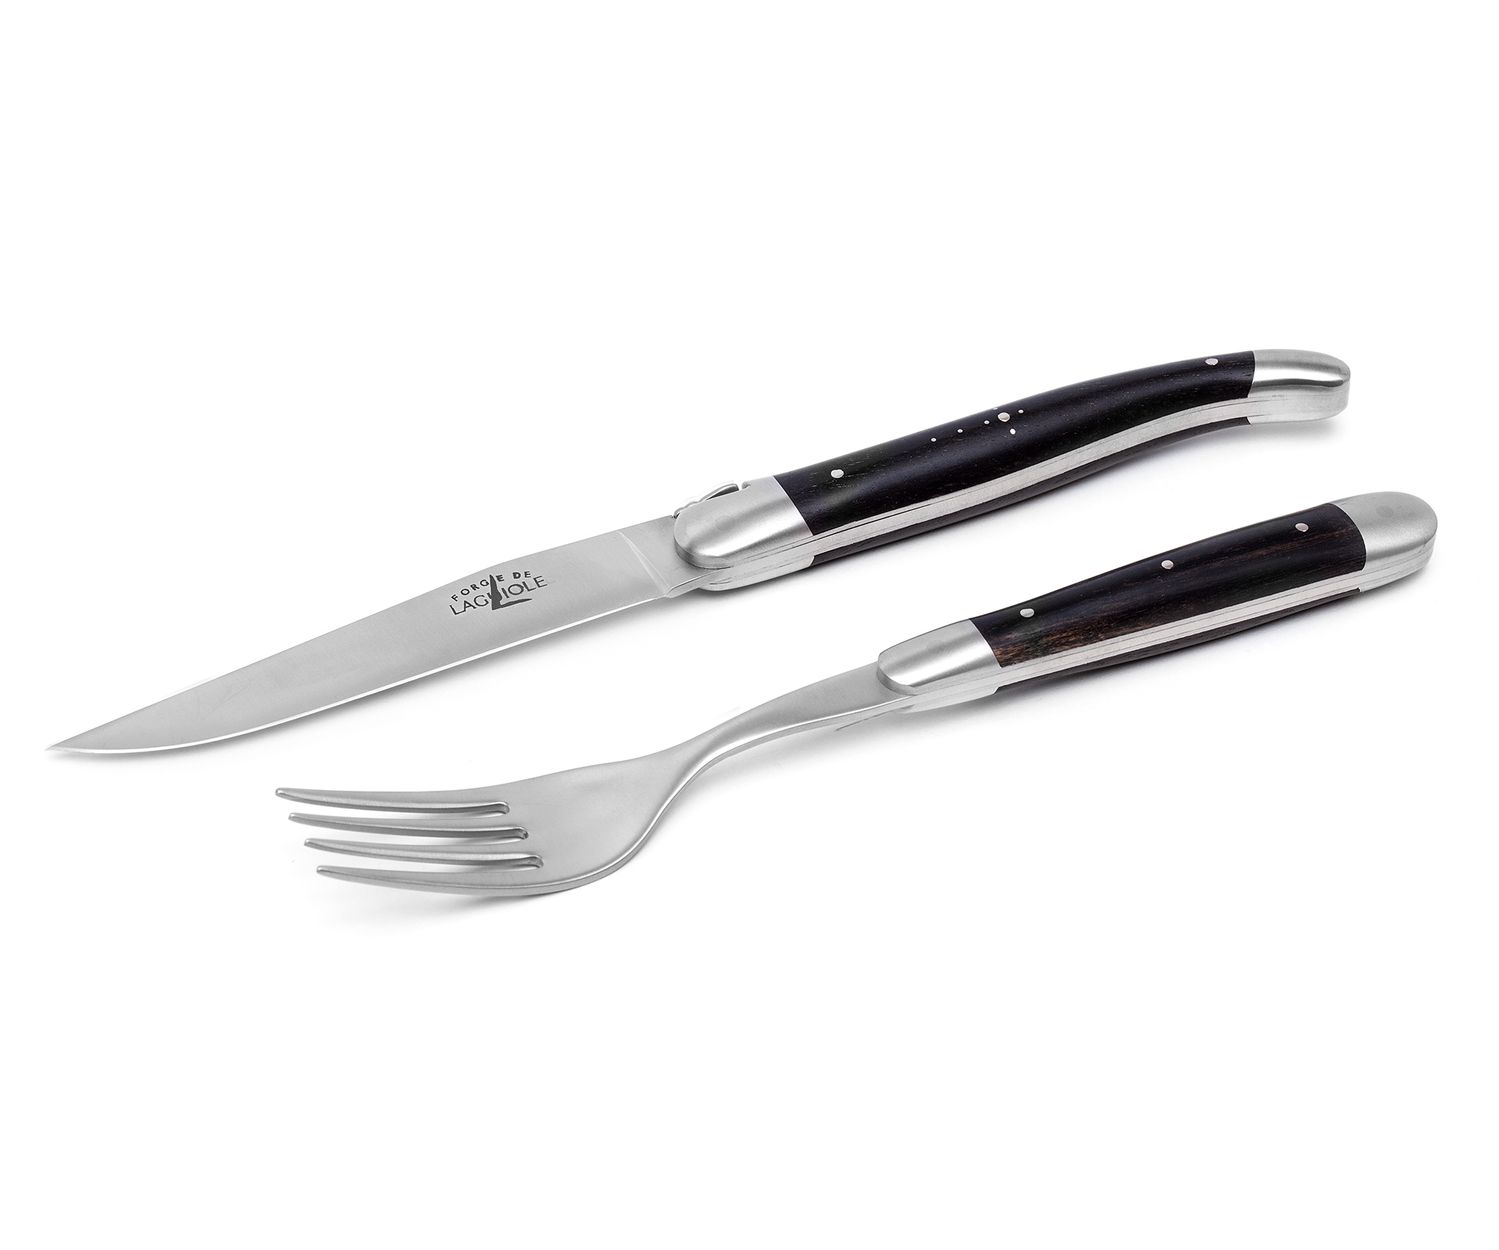 Forge de Laguiole Steak-Set 2-tlg, Ebenholz